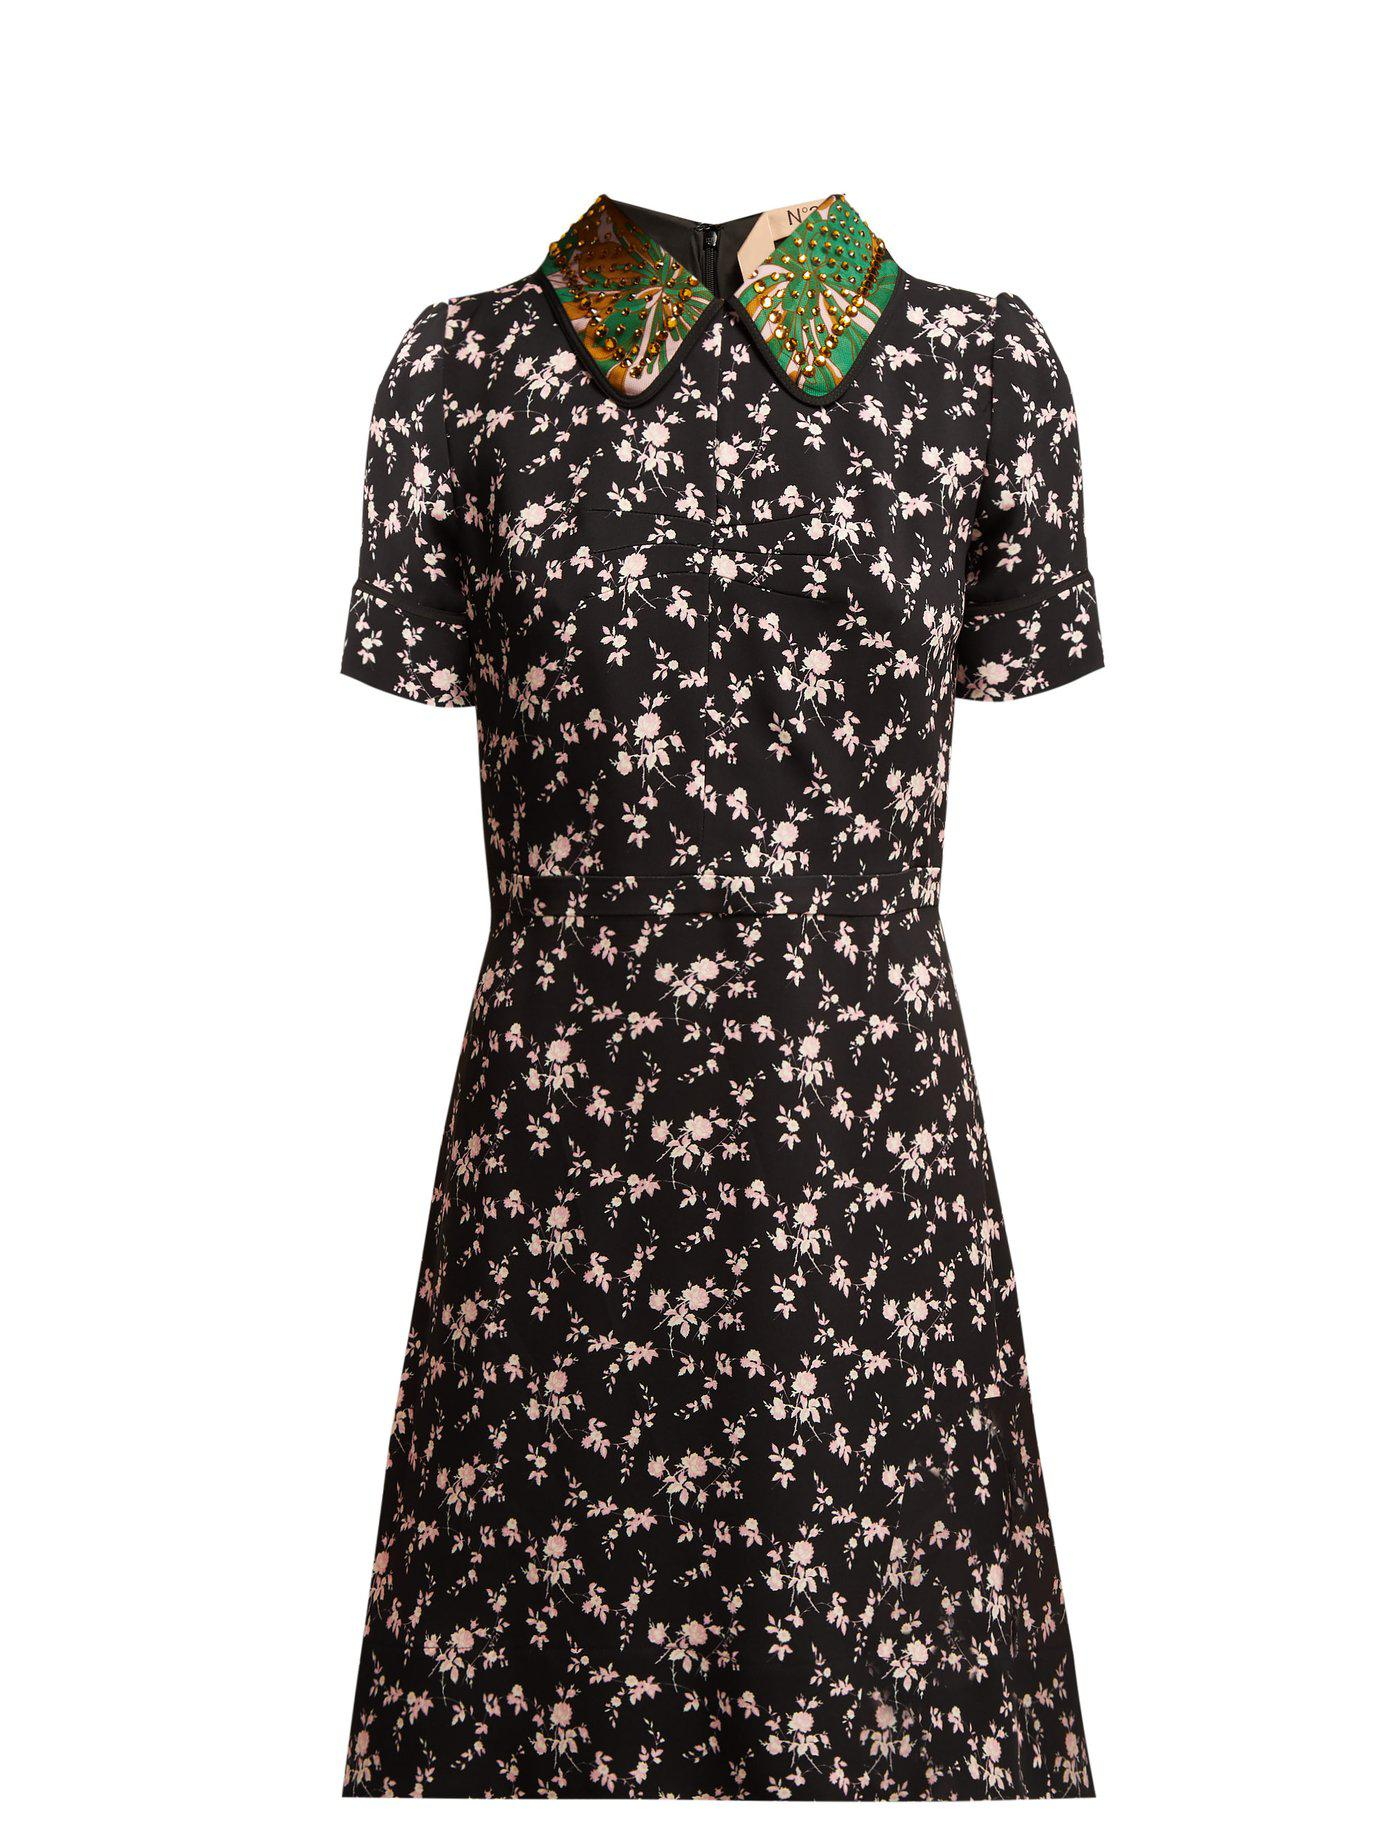 324c578acb05 n21-black-multi-Stampa-Floral-Print-Dress.jpeg